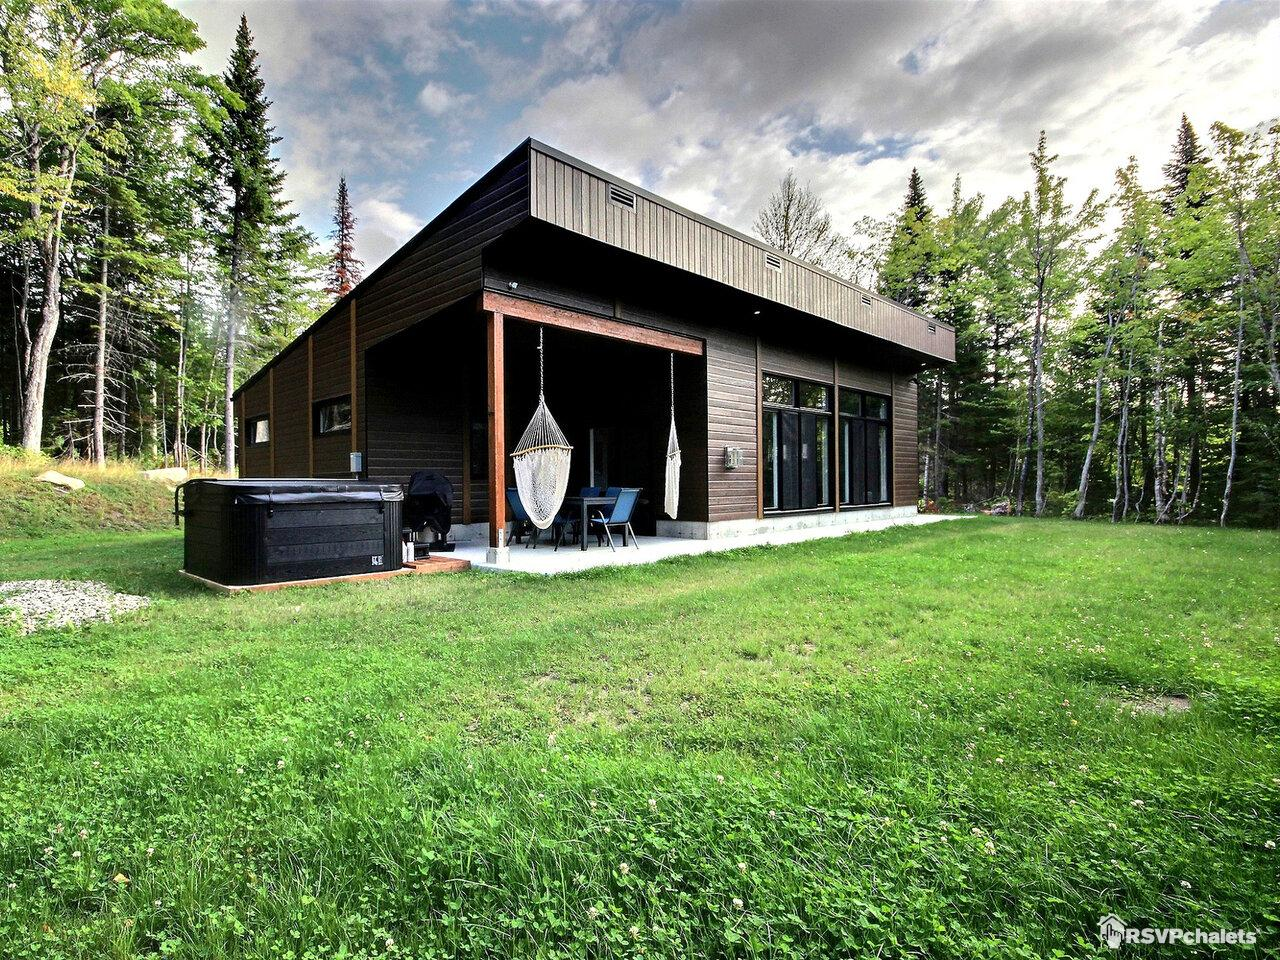 Stupendous Cottage Rentals Cottages For Rent On Rsvpchalets Interior Design Ideas Ghosoteloinfo